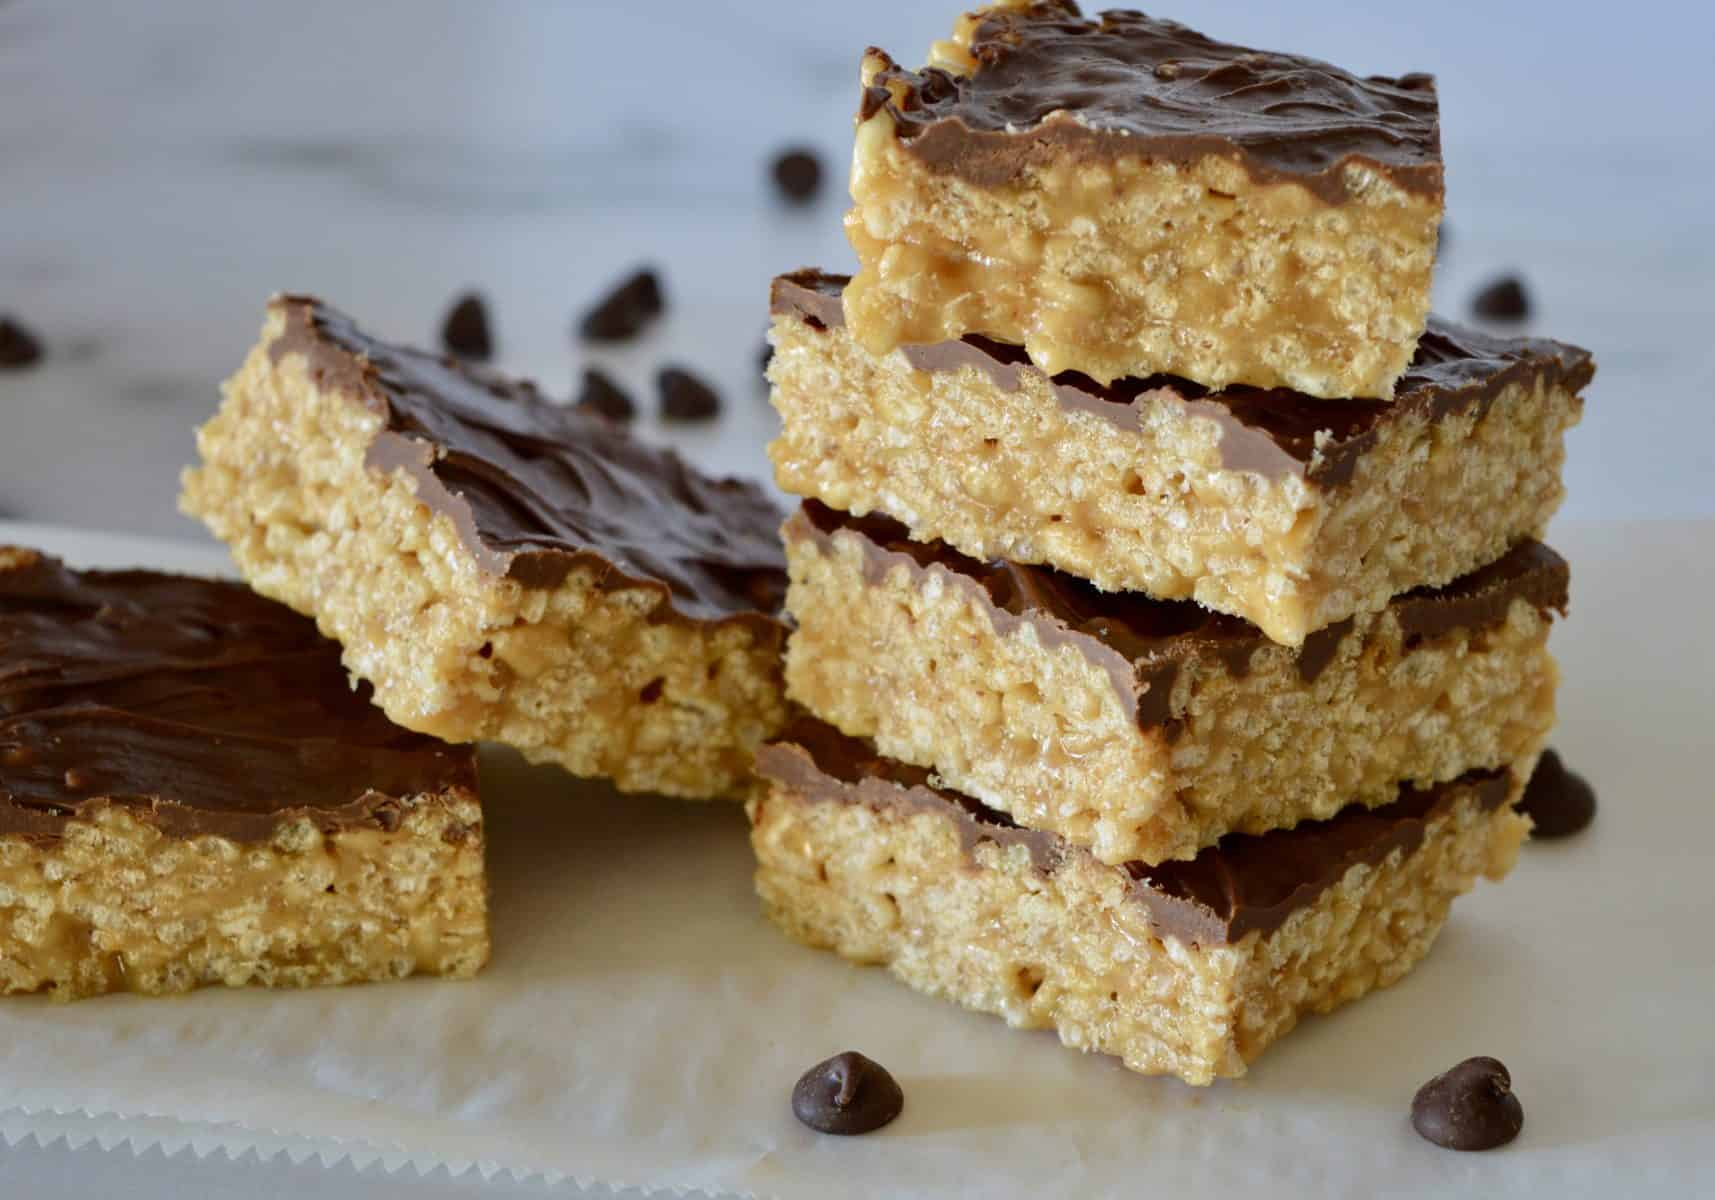 Caramel Peanut Butter Krispies staked on a white countertop.